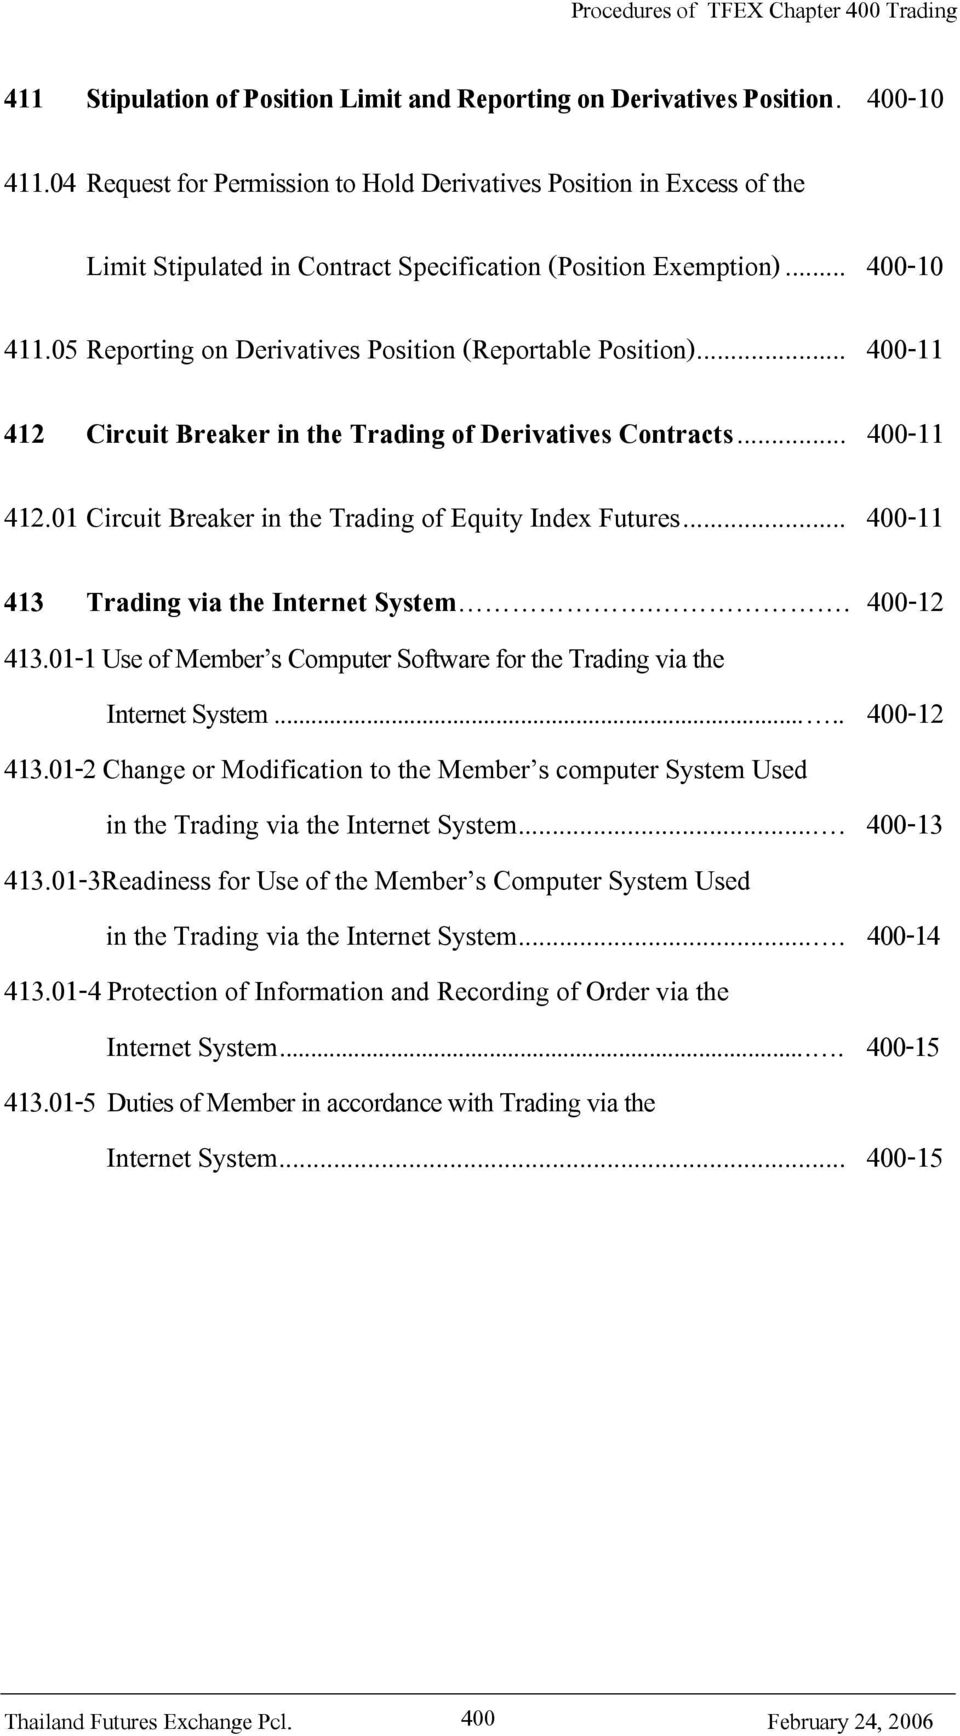 05 Reporting on Derivatives Position (Reportable Position)... 400-11 412 Circuit Breaker in the Trading of Derivatives Contracts... 400-11 412.01 Circuit Breaker in the Trading of Equity Index Futures.